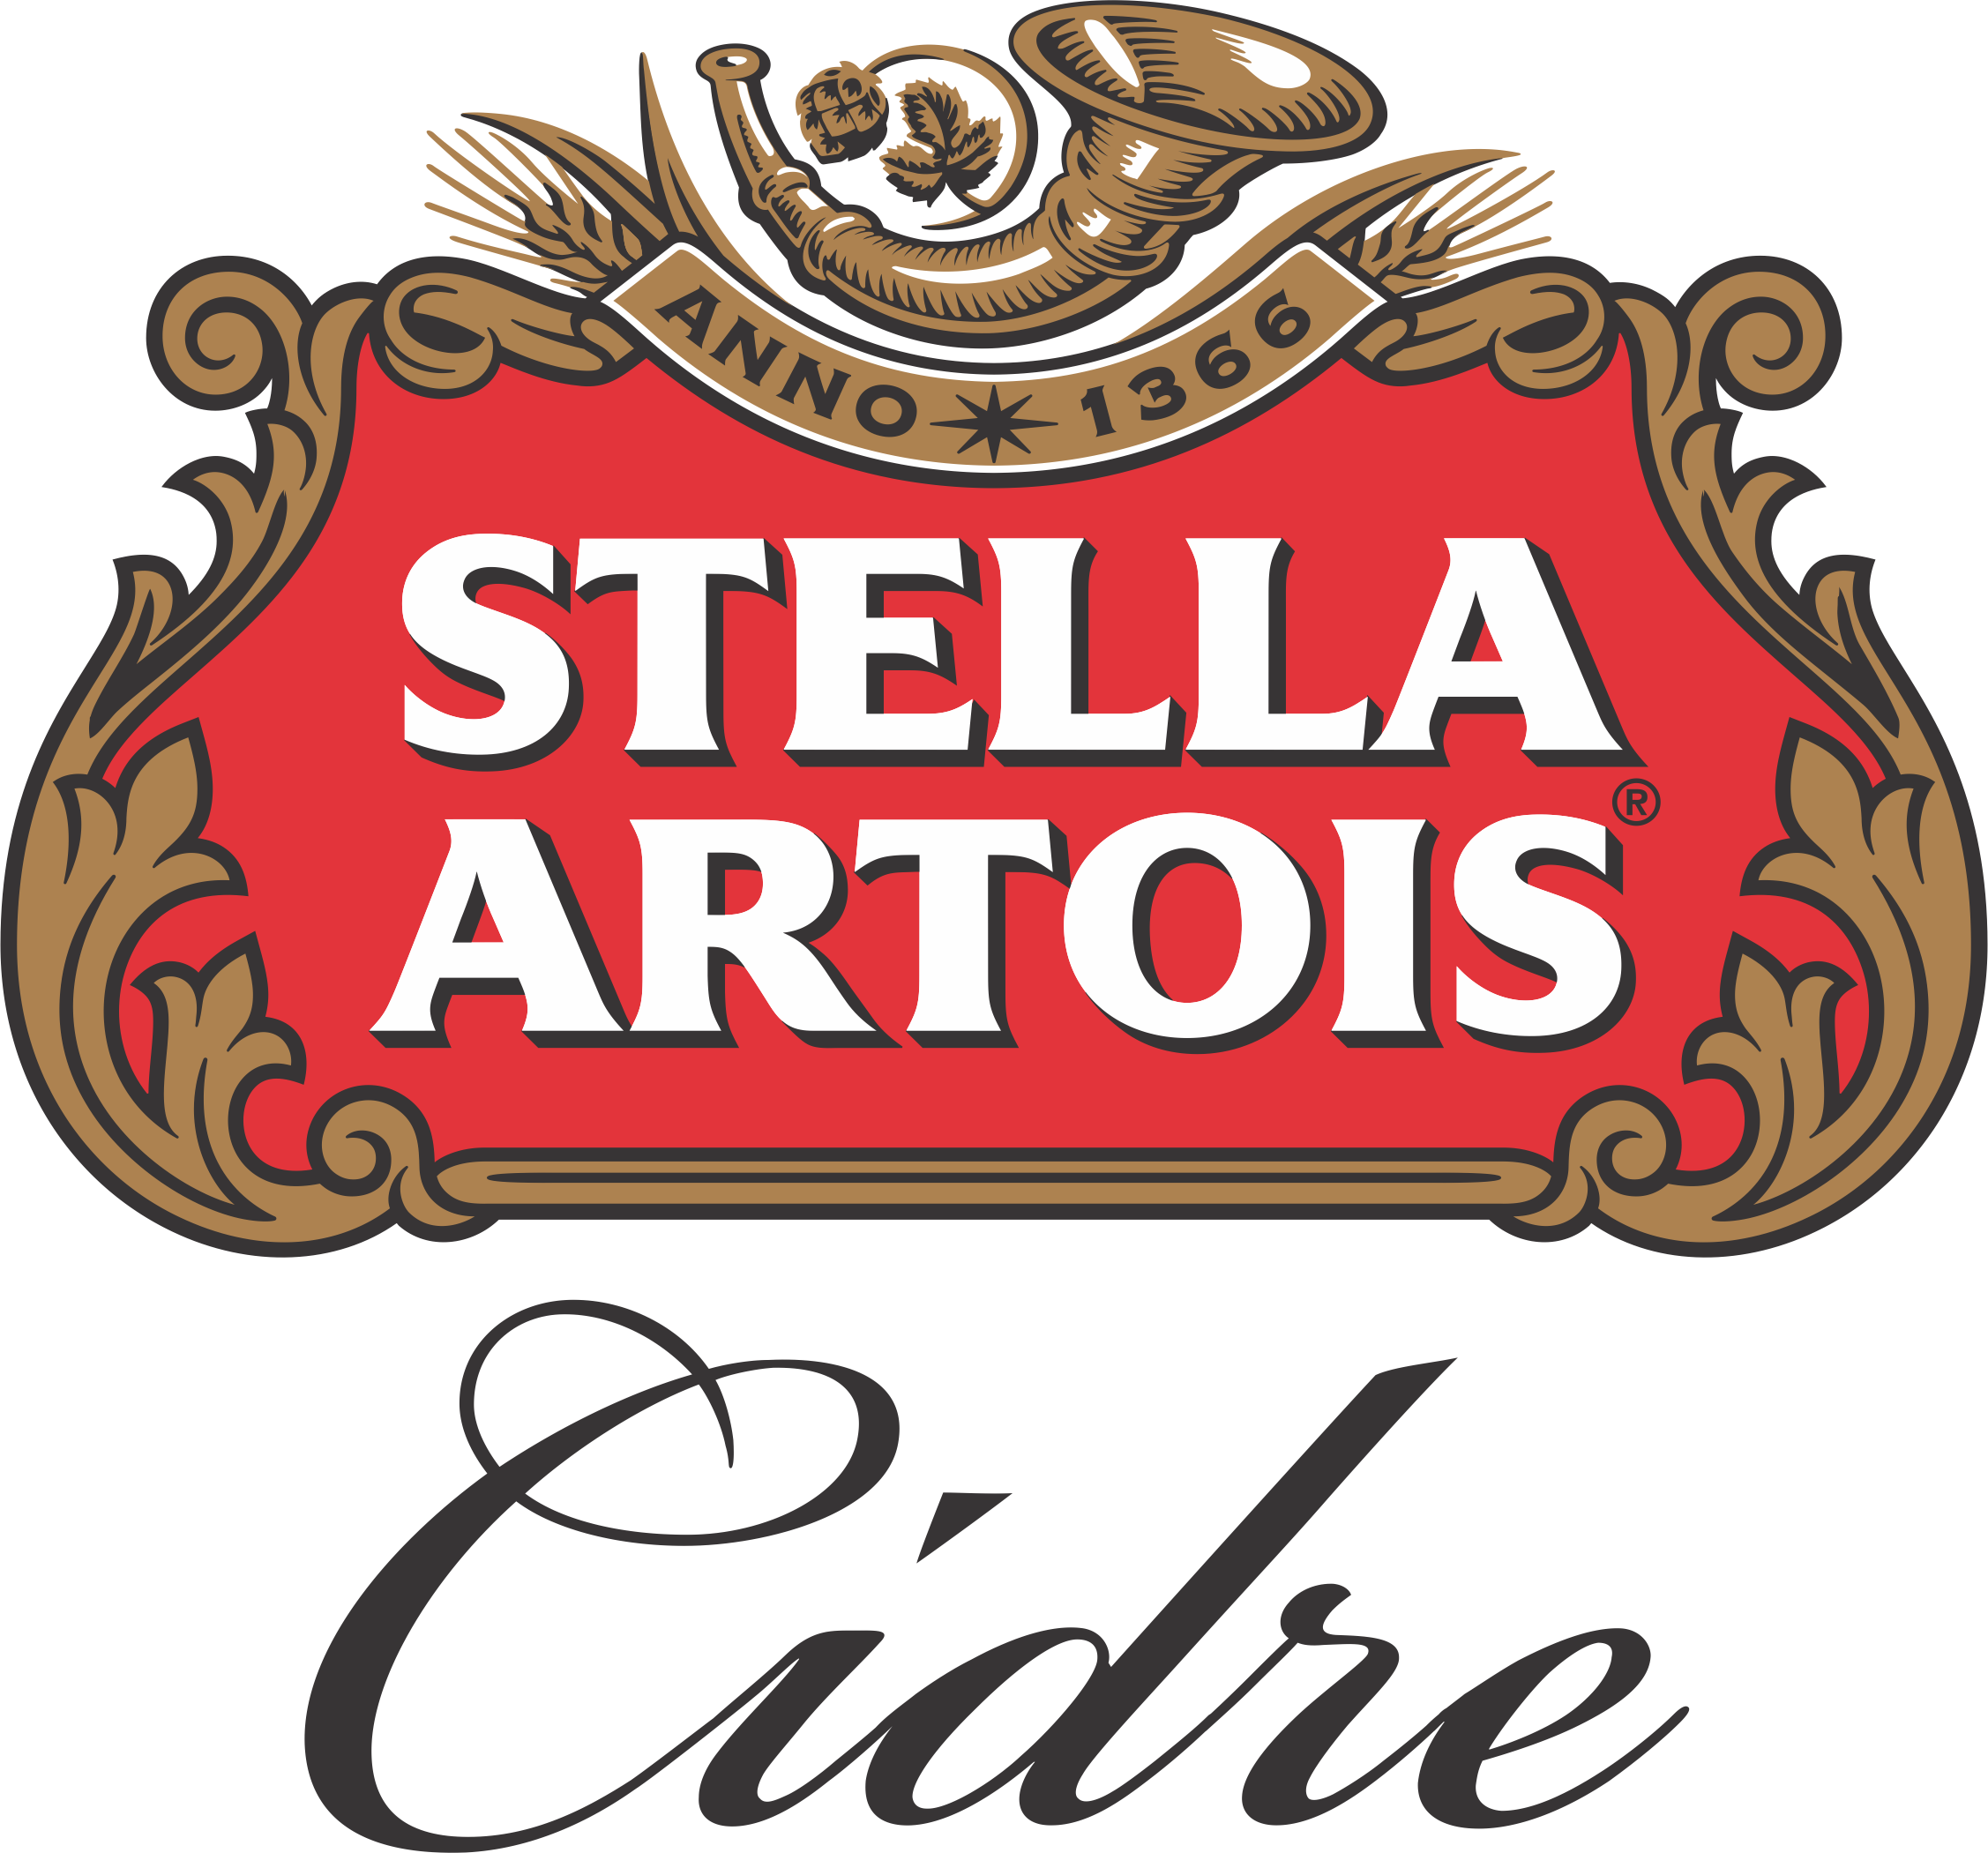 Stella Cidre - Served at the ACA